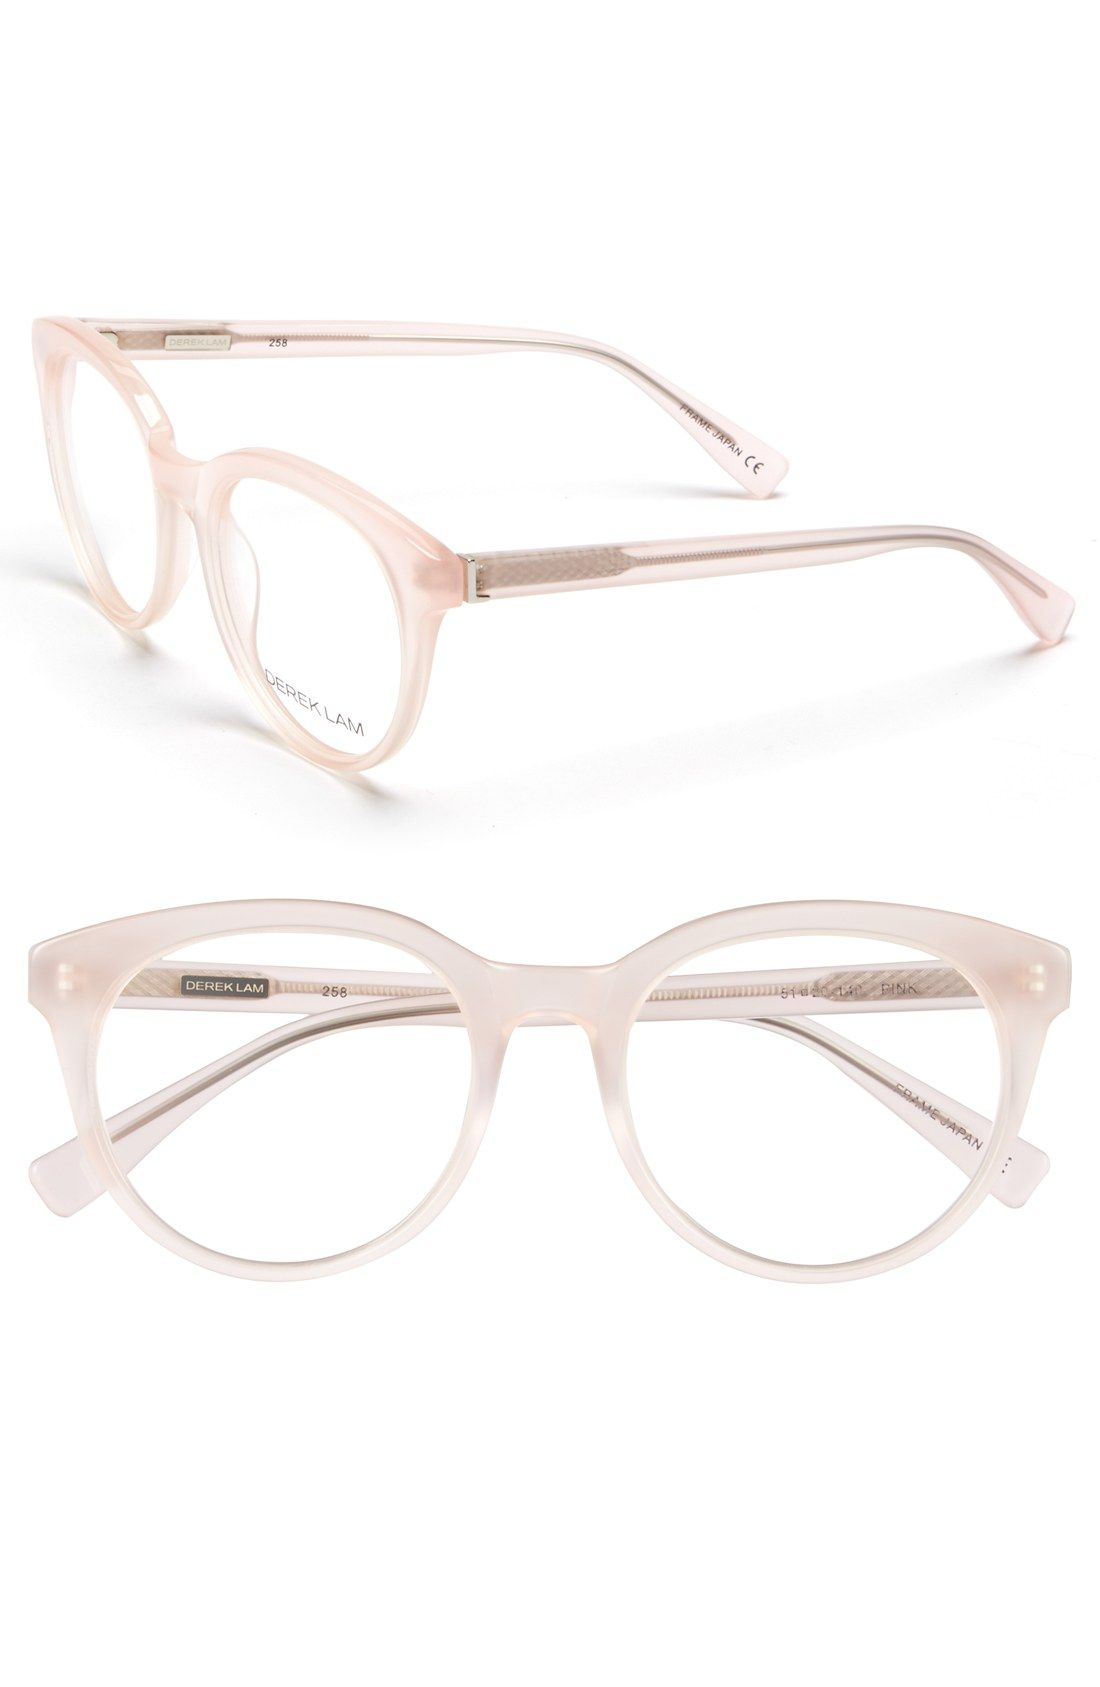 Derek Lam 51mm Optical Glasses | Fashion | Pinterest | Lentes, Gafas ...